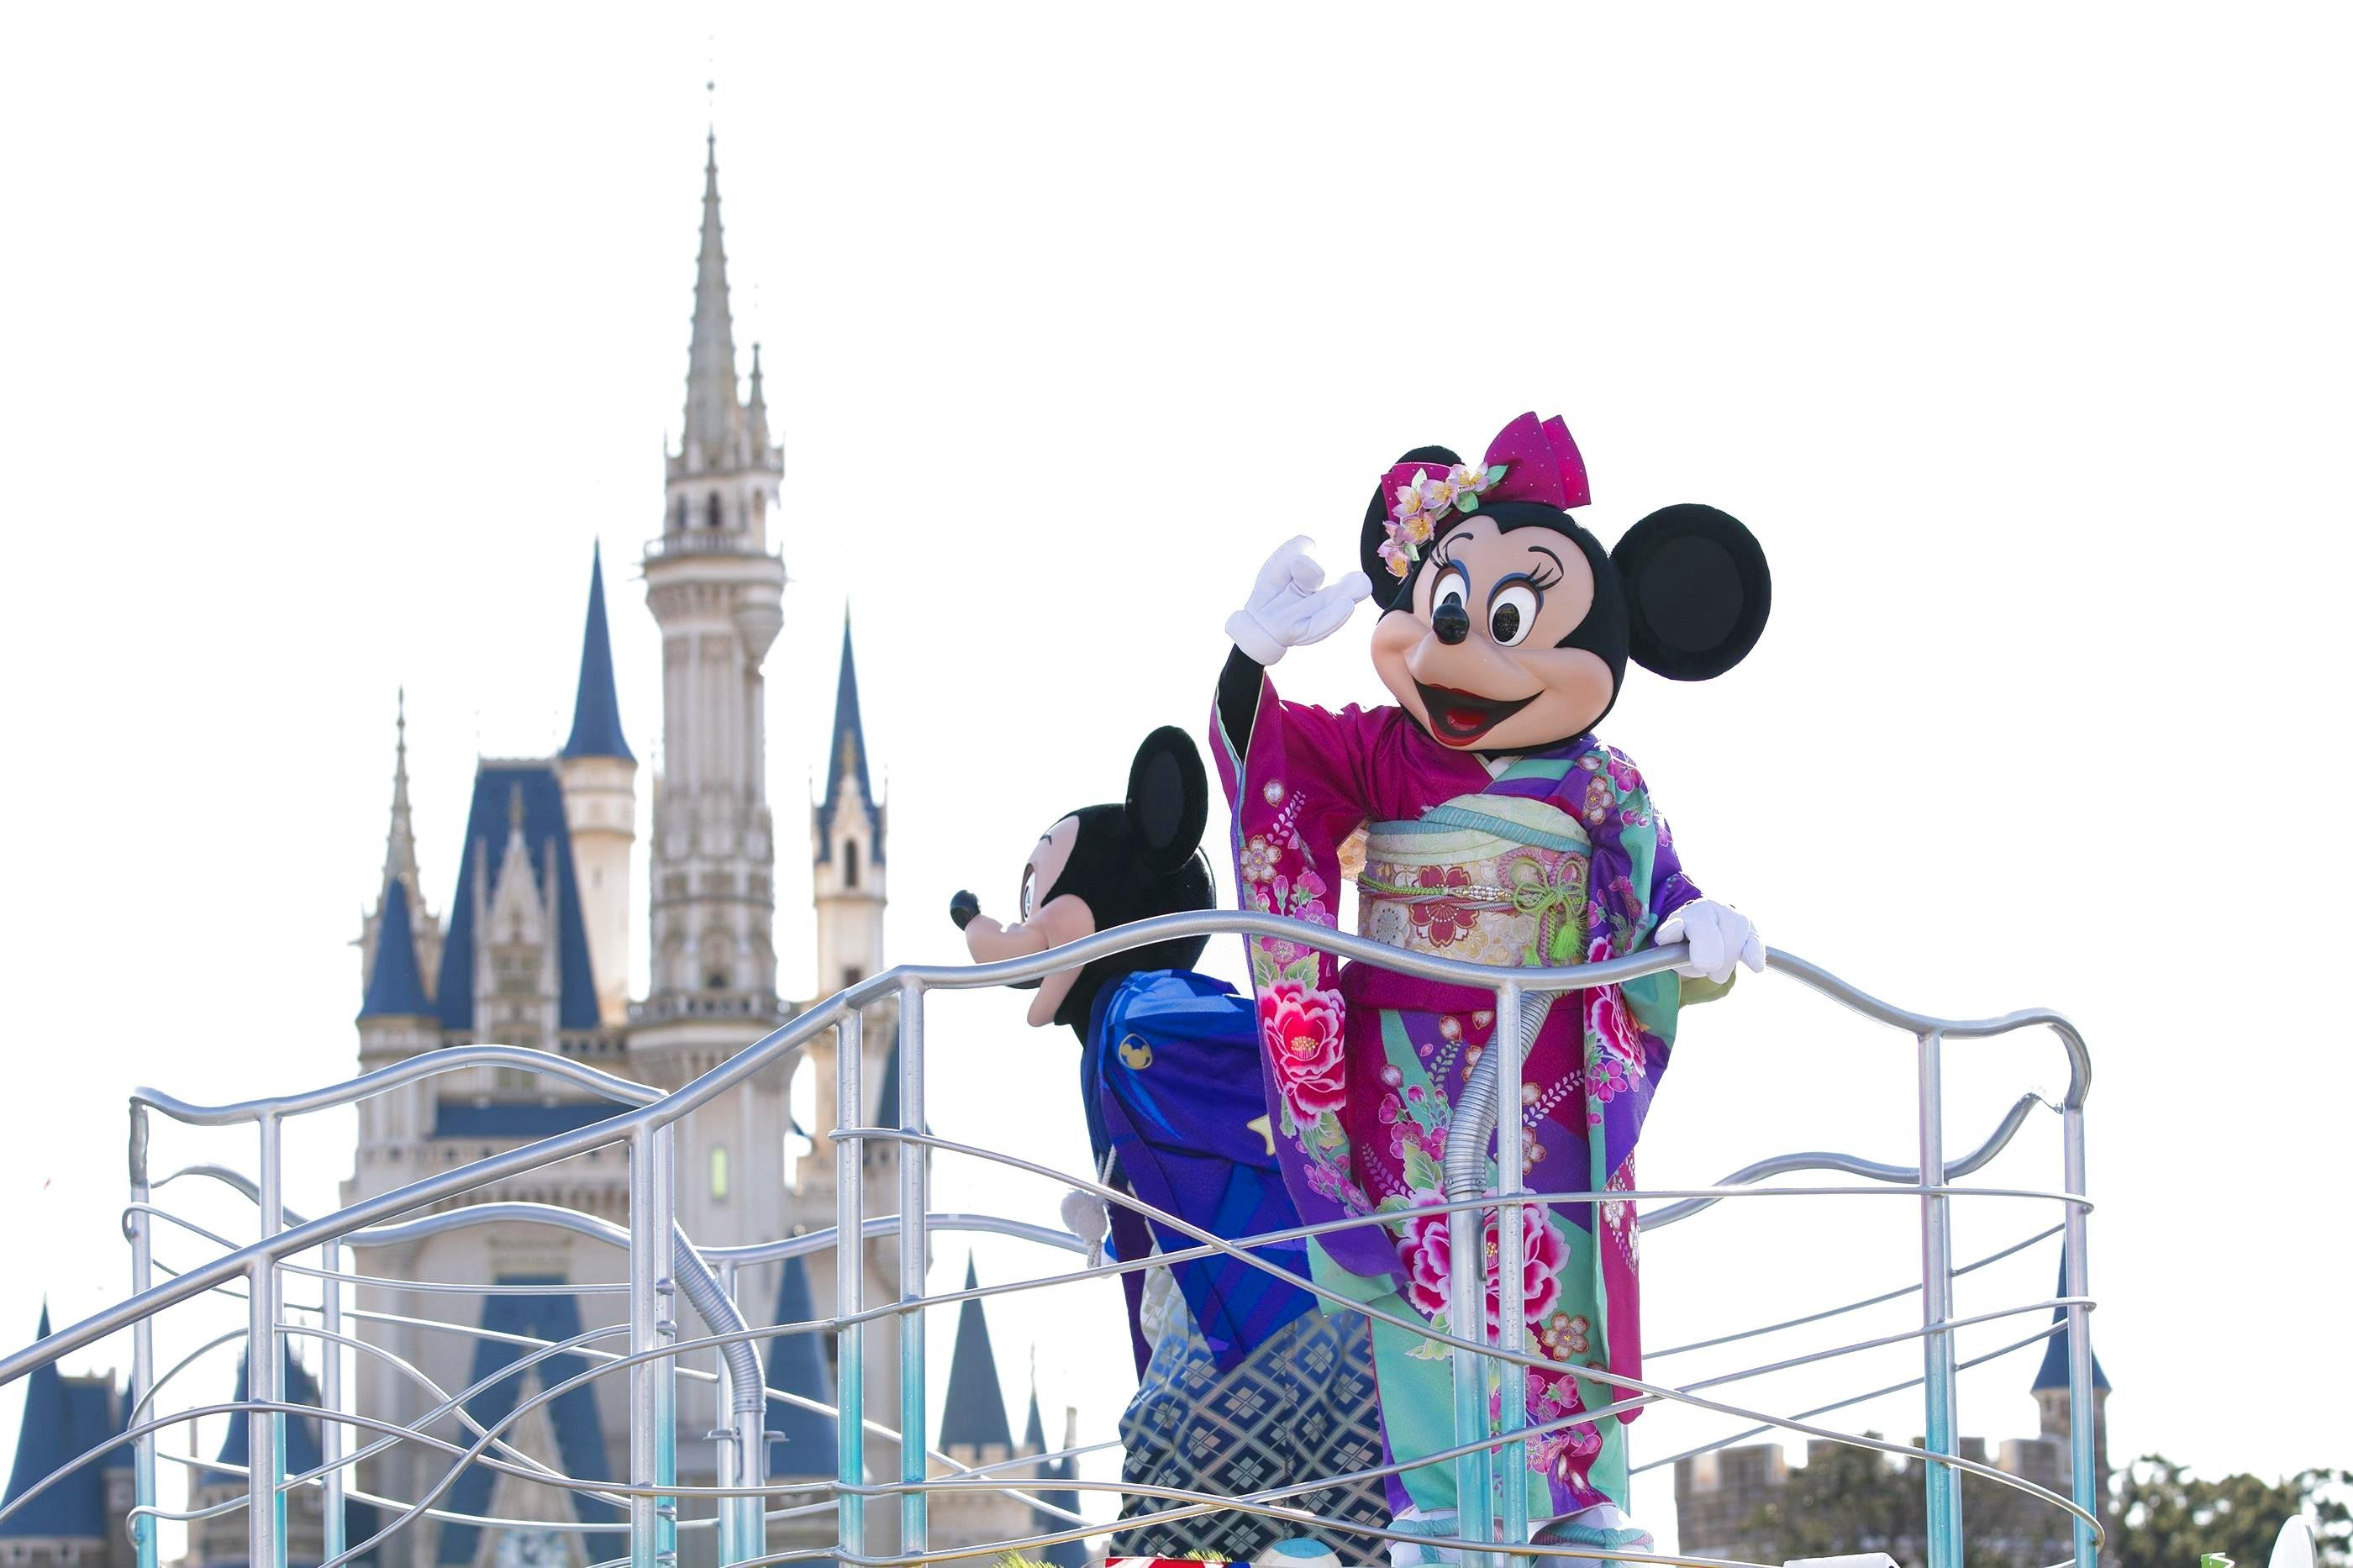 Disney theme parks in Tokyo to reopen July 1